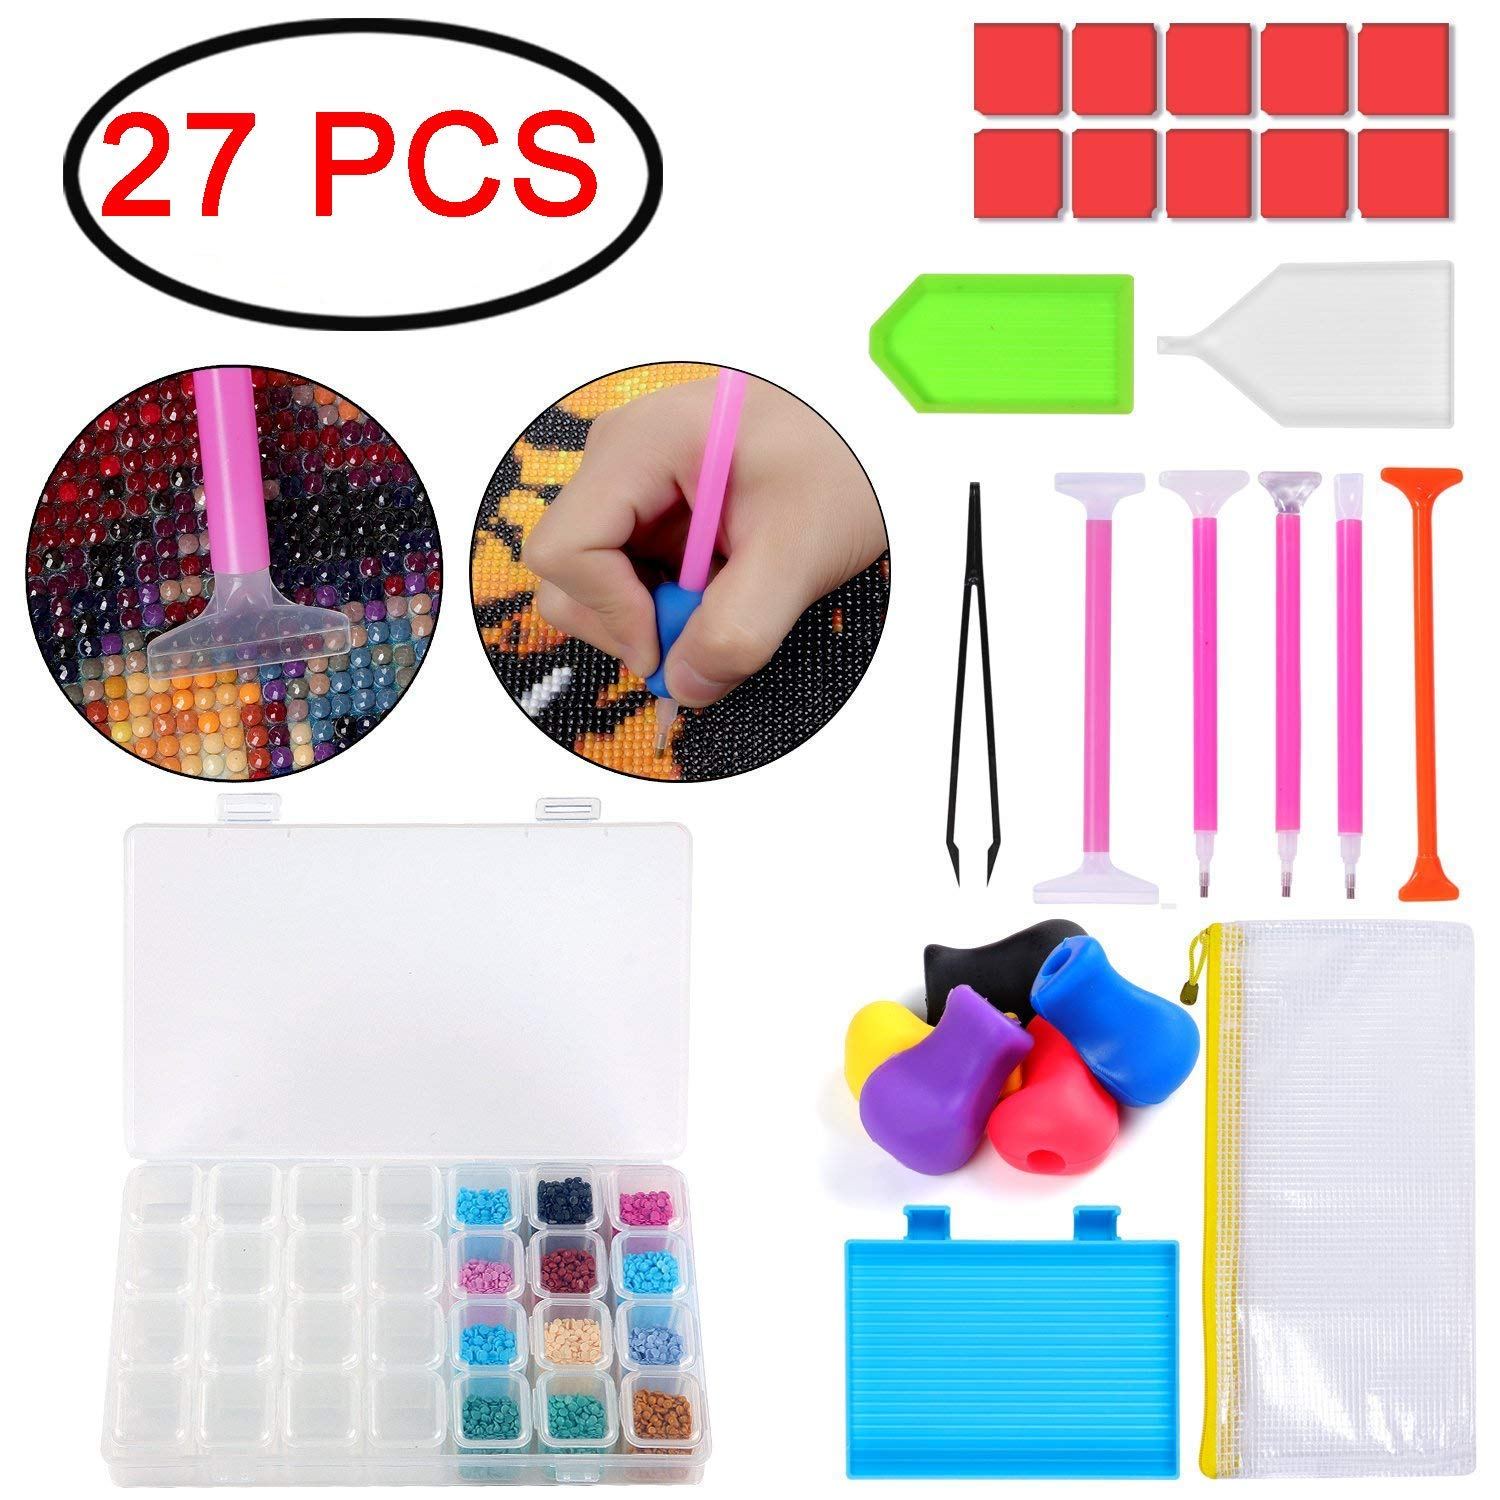 Futohon 27PCS Diamond Painting Tools Diamond Cross Stitch Tool with Ergonomic Pencil Grip,Diamond Stitch Pen,Tweezers,Plastic Tray,Glue and 28 Slots Diamond Embroidery Box for DIY Art Craft